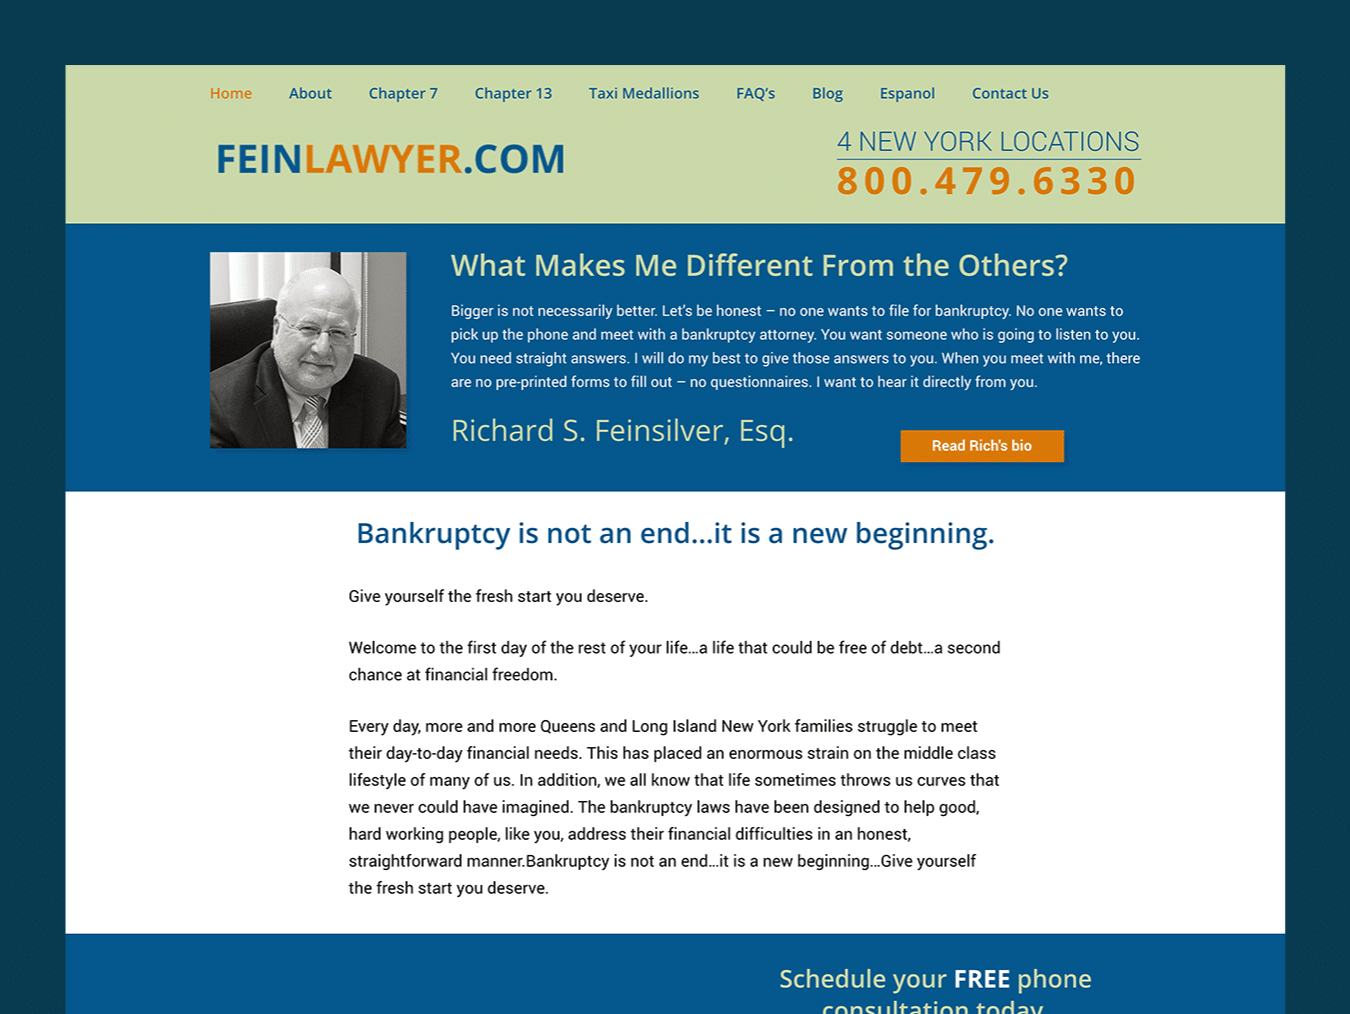 Law Firm Web Design – Fein Law (Thumbnail Design)